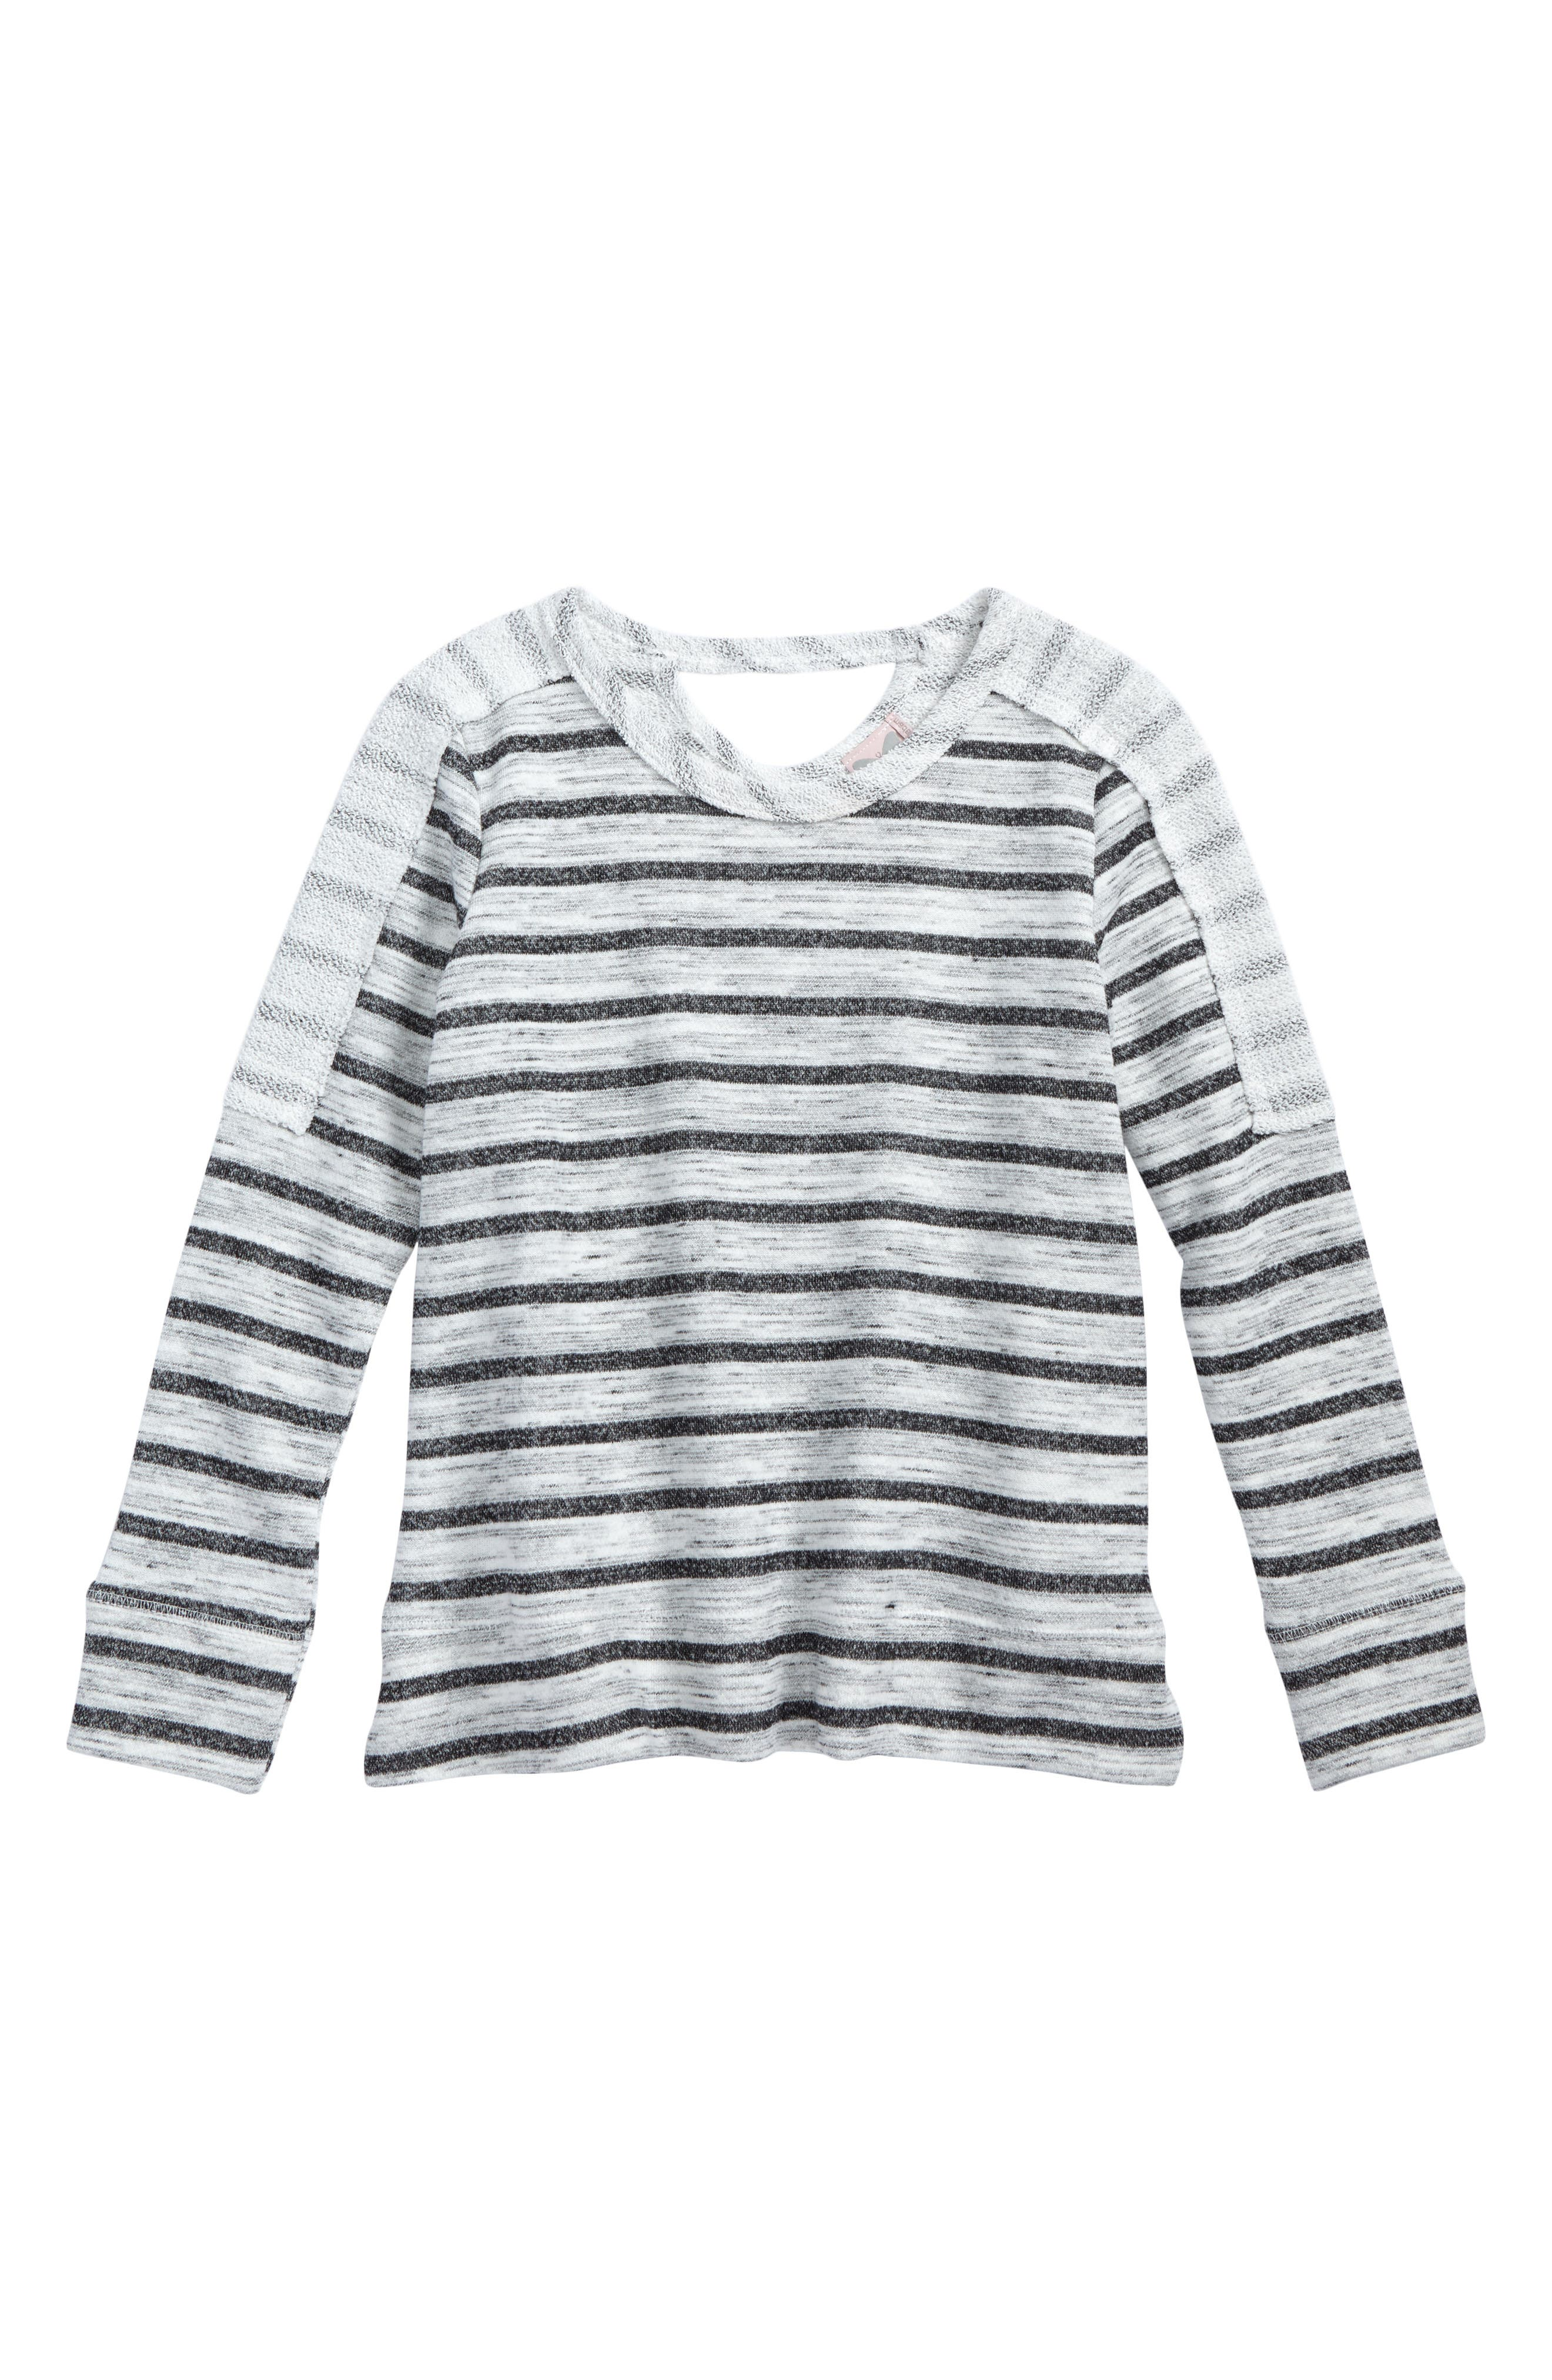 Mixed Media Stripe Top,                         Main,                         color, White/ Charcoal